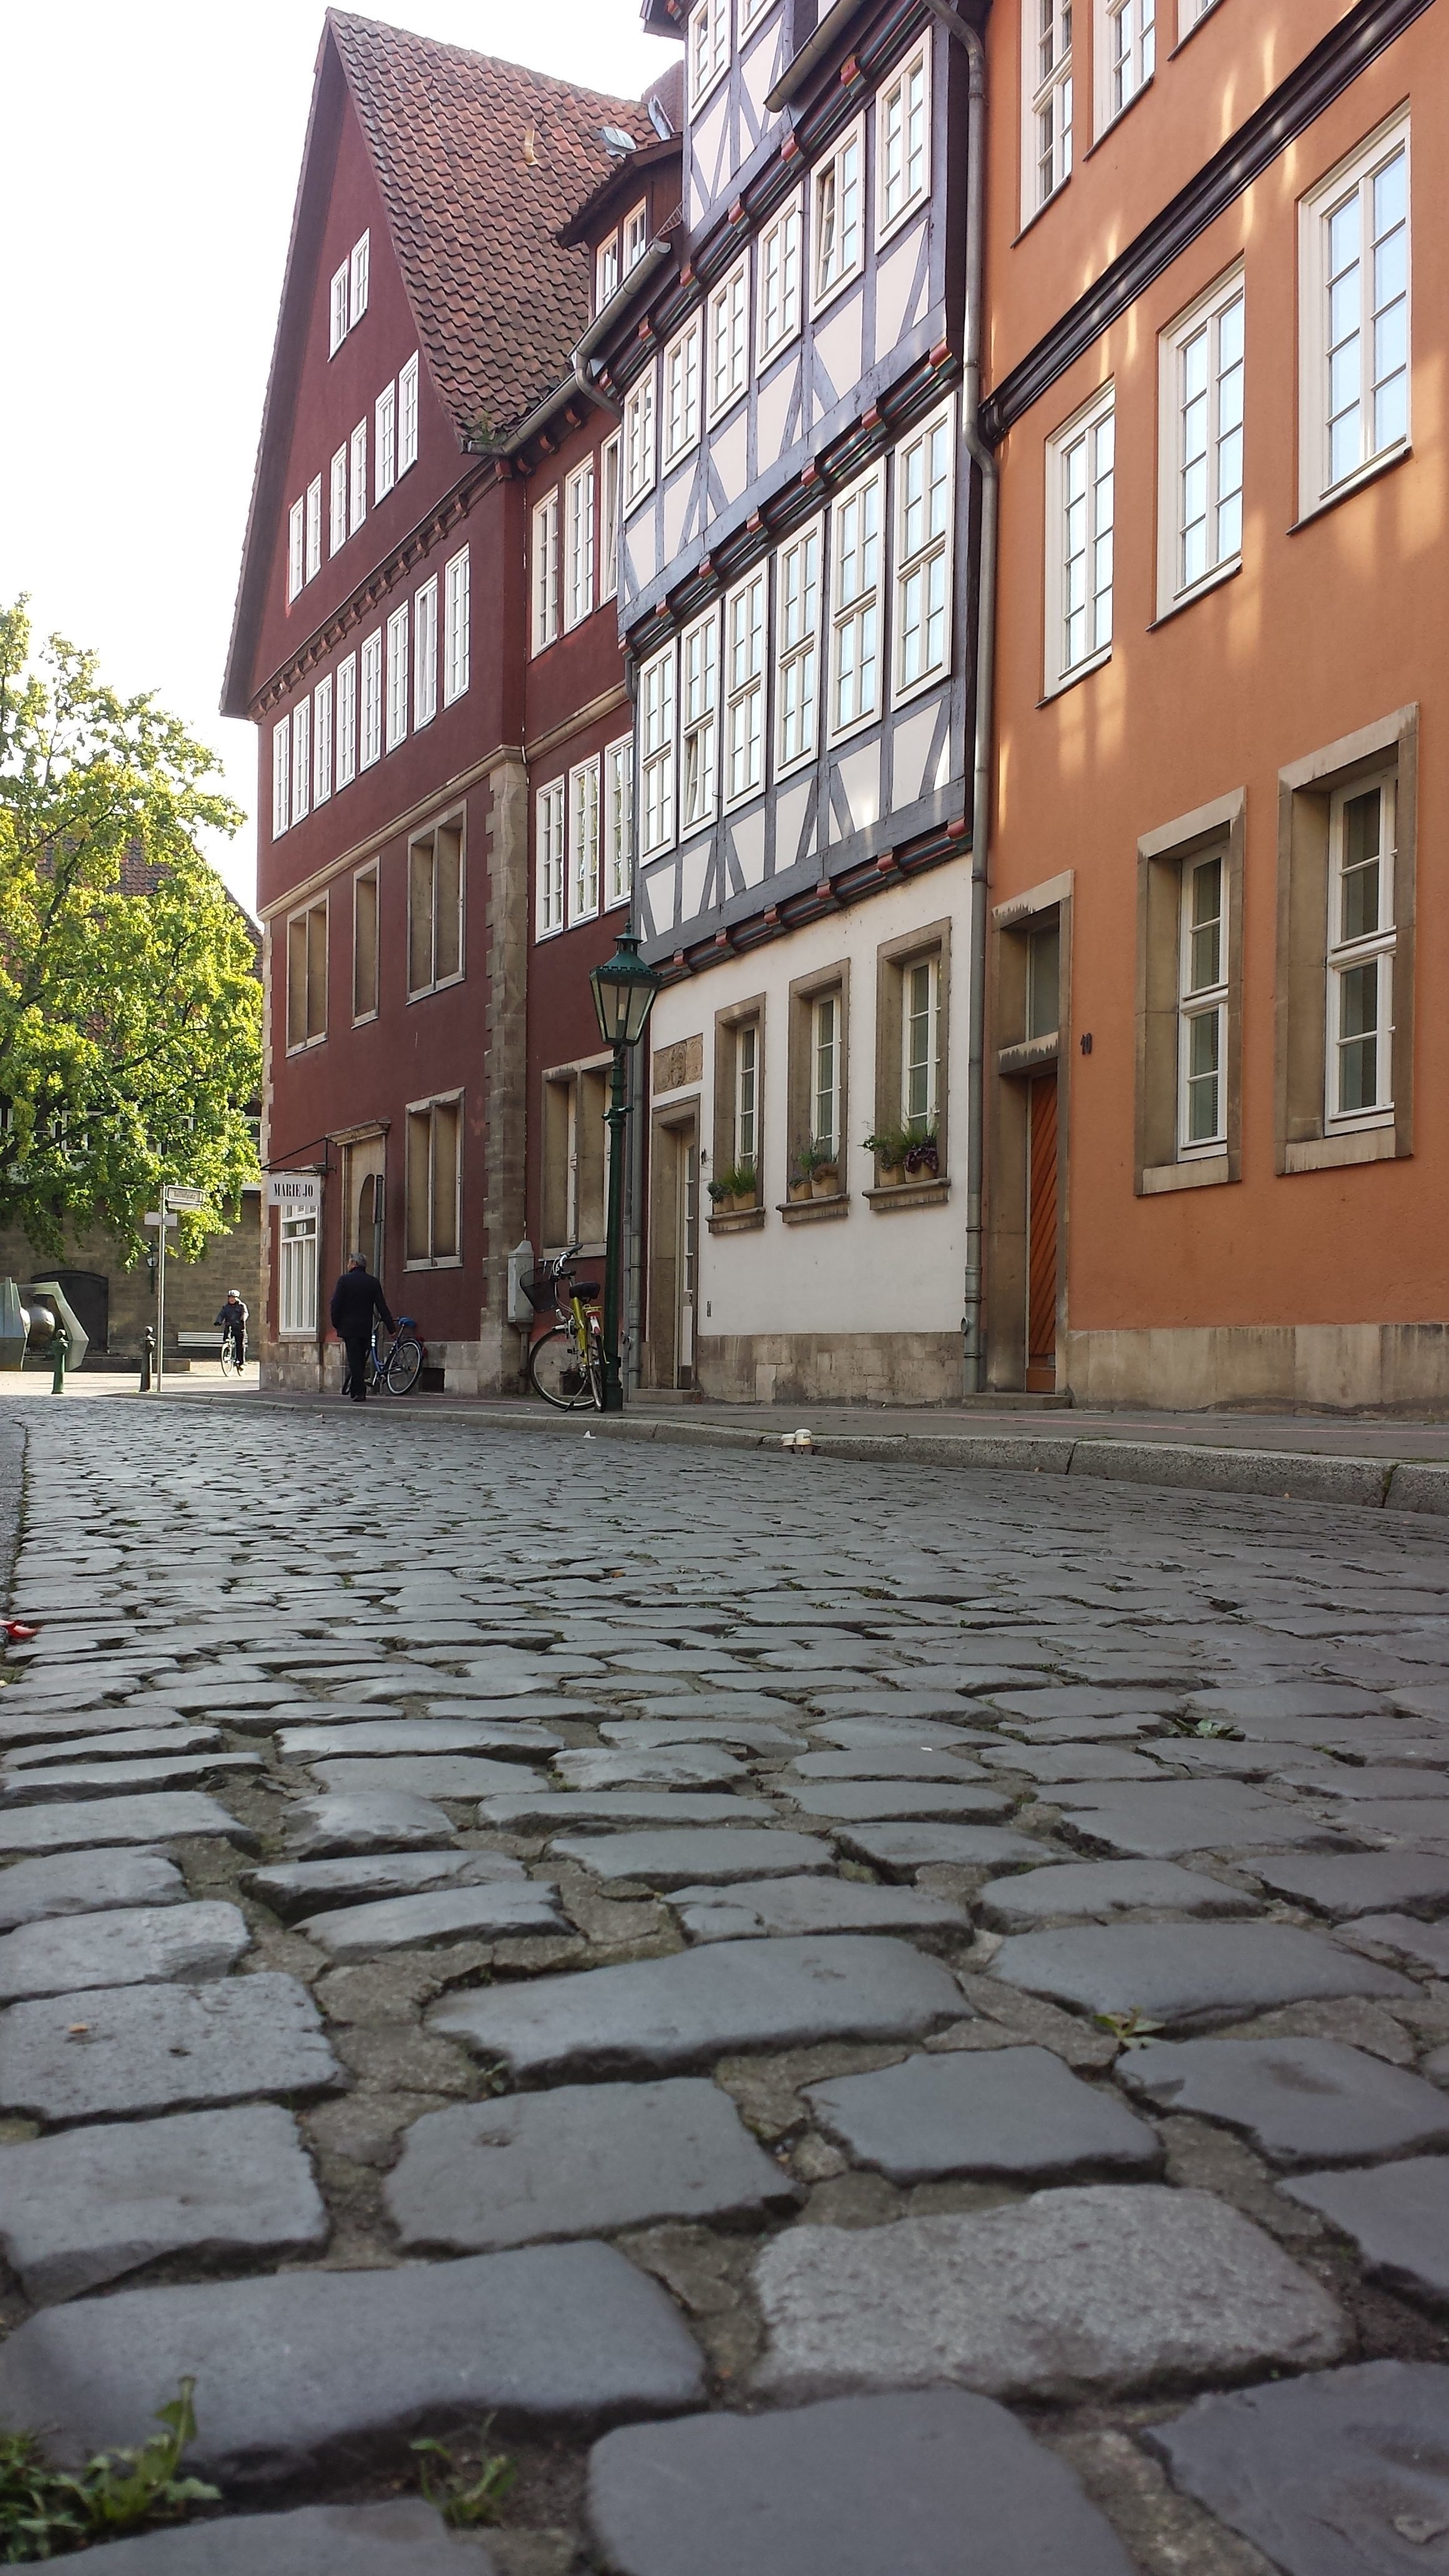 Colourful_SideStreets_Hannover_Germany